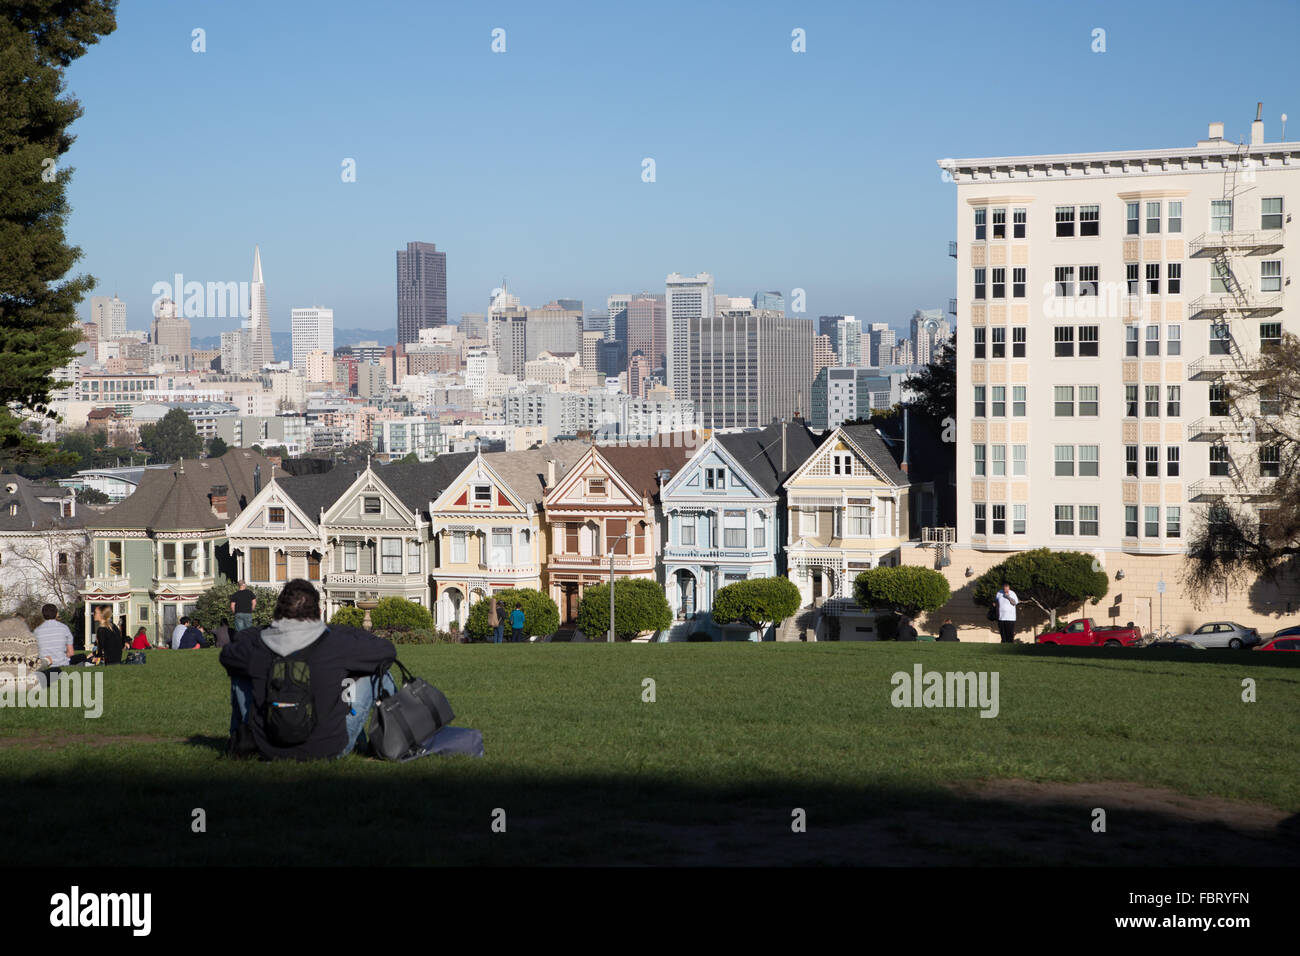 Man watching view of downtown San Francisco and the Painted Ladies from Alamo Square. - Stock Image